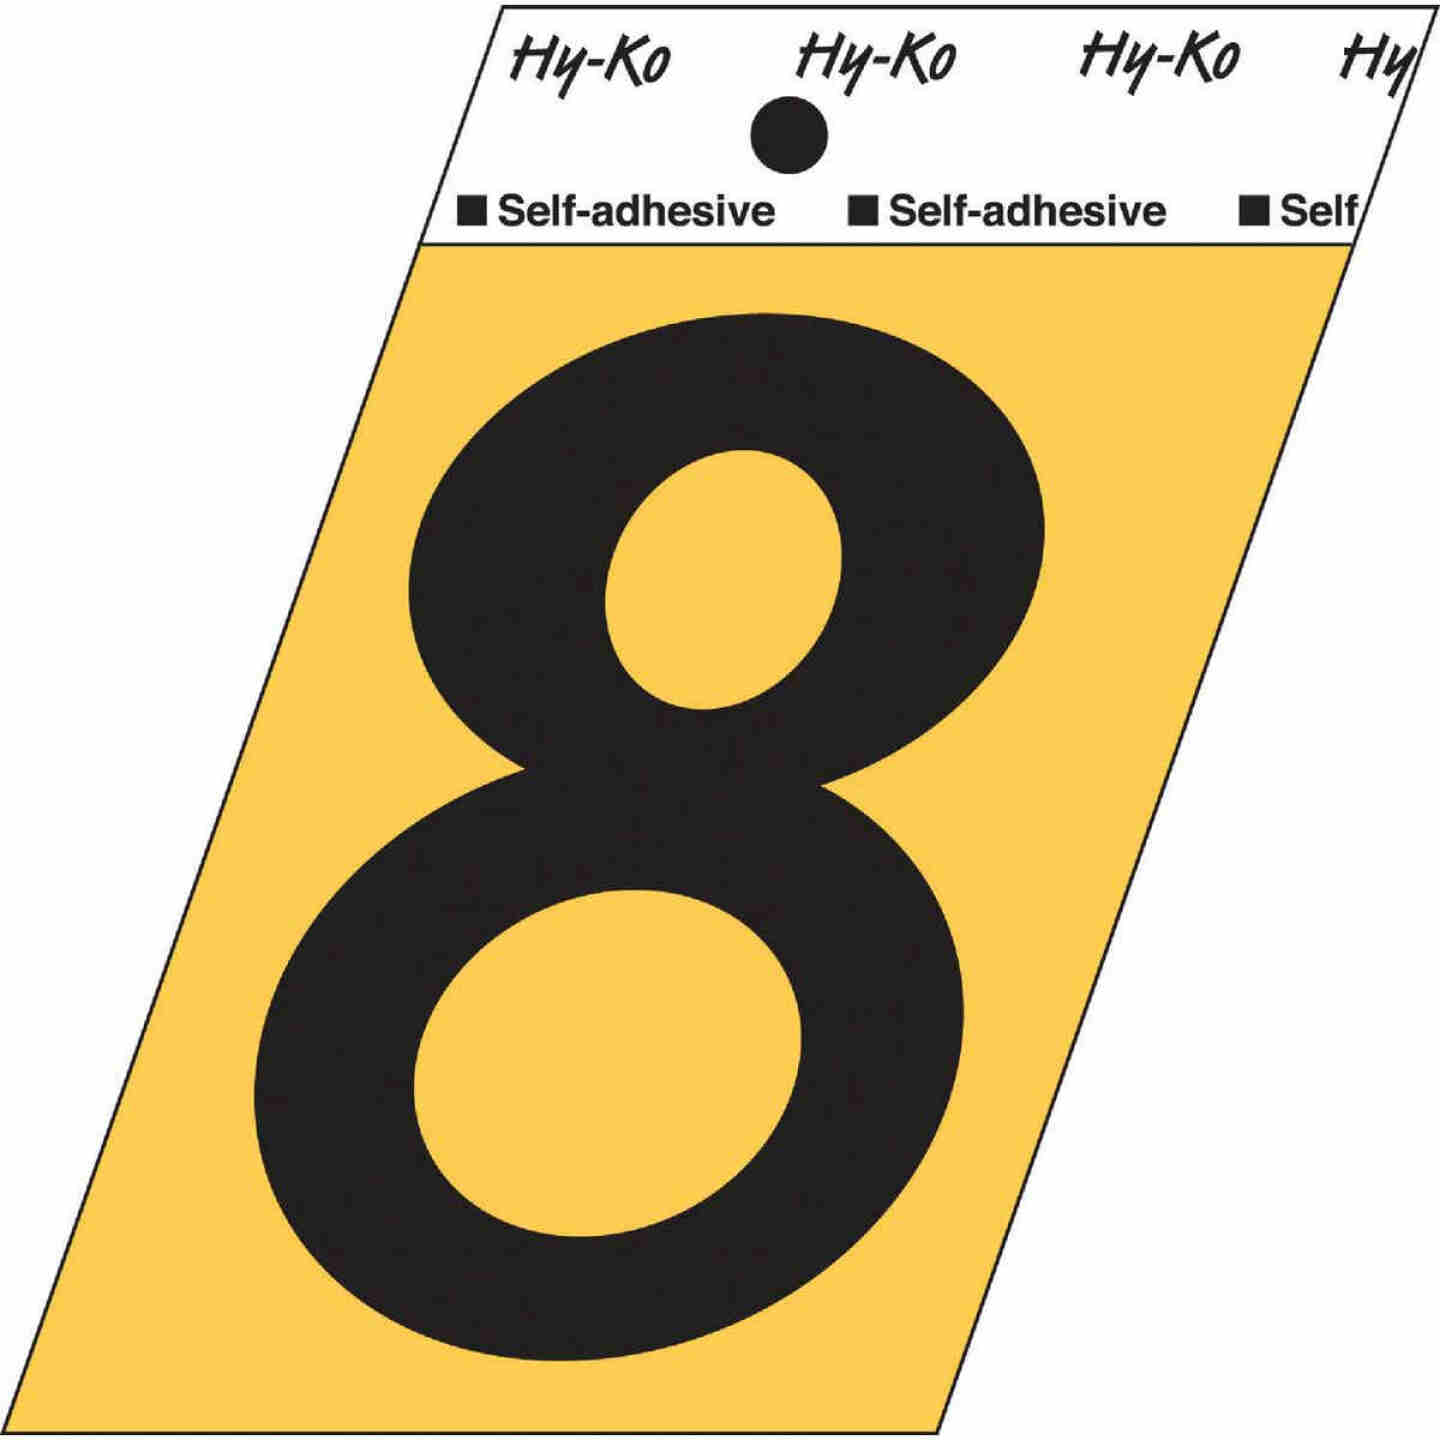 Hy-Ko Aluminum 3-1/2 In. Non-Reflective Adhesive Number Eight Image 1